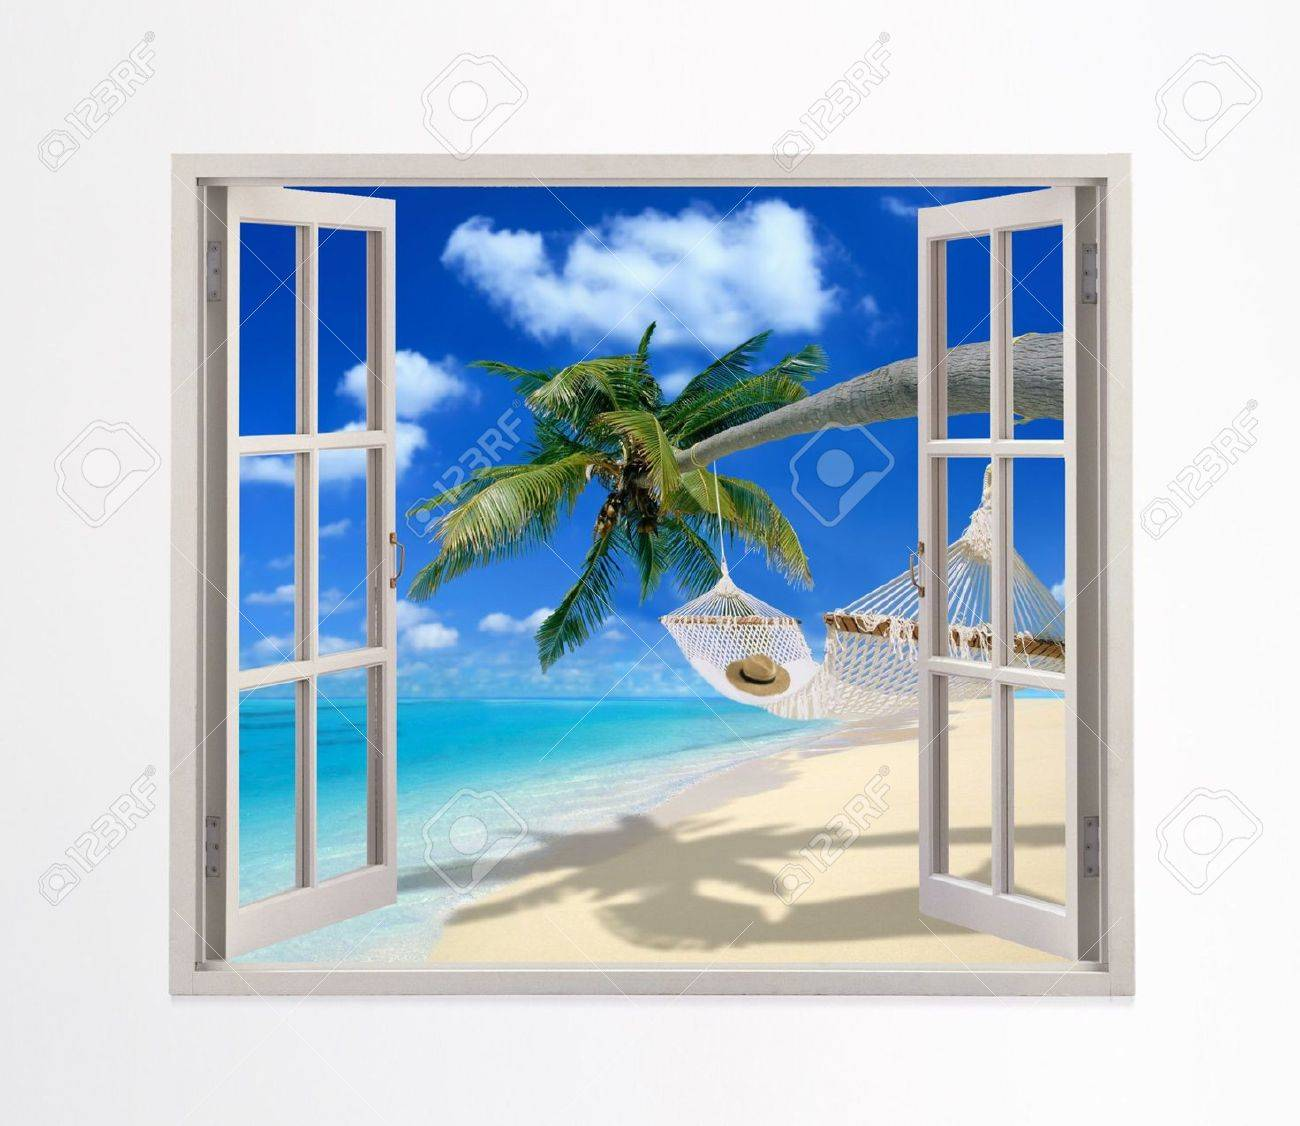 Open window beach - Open Window On A Beach Stock Photo 5511599